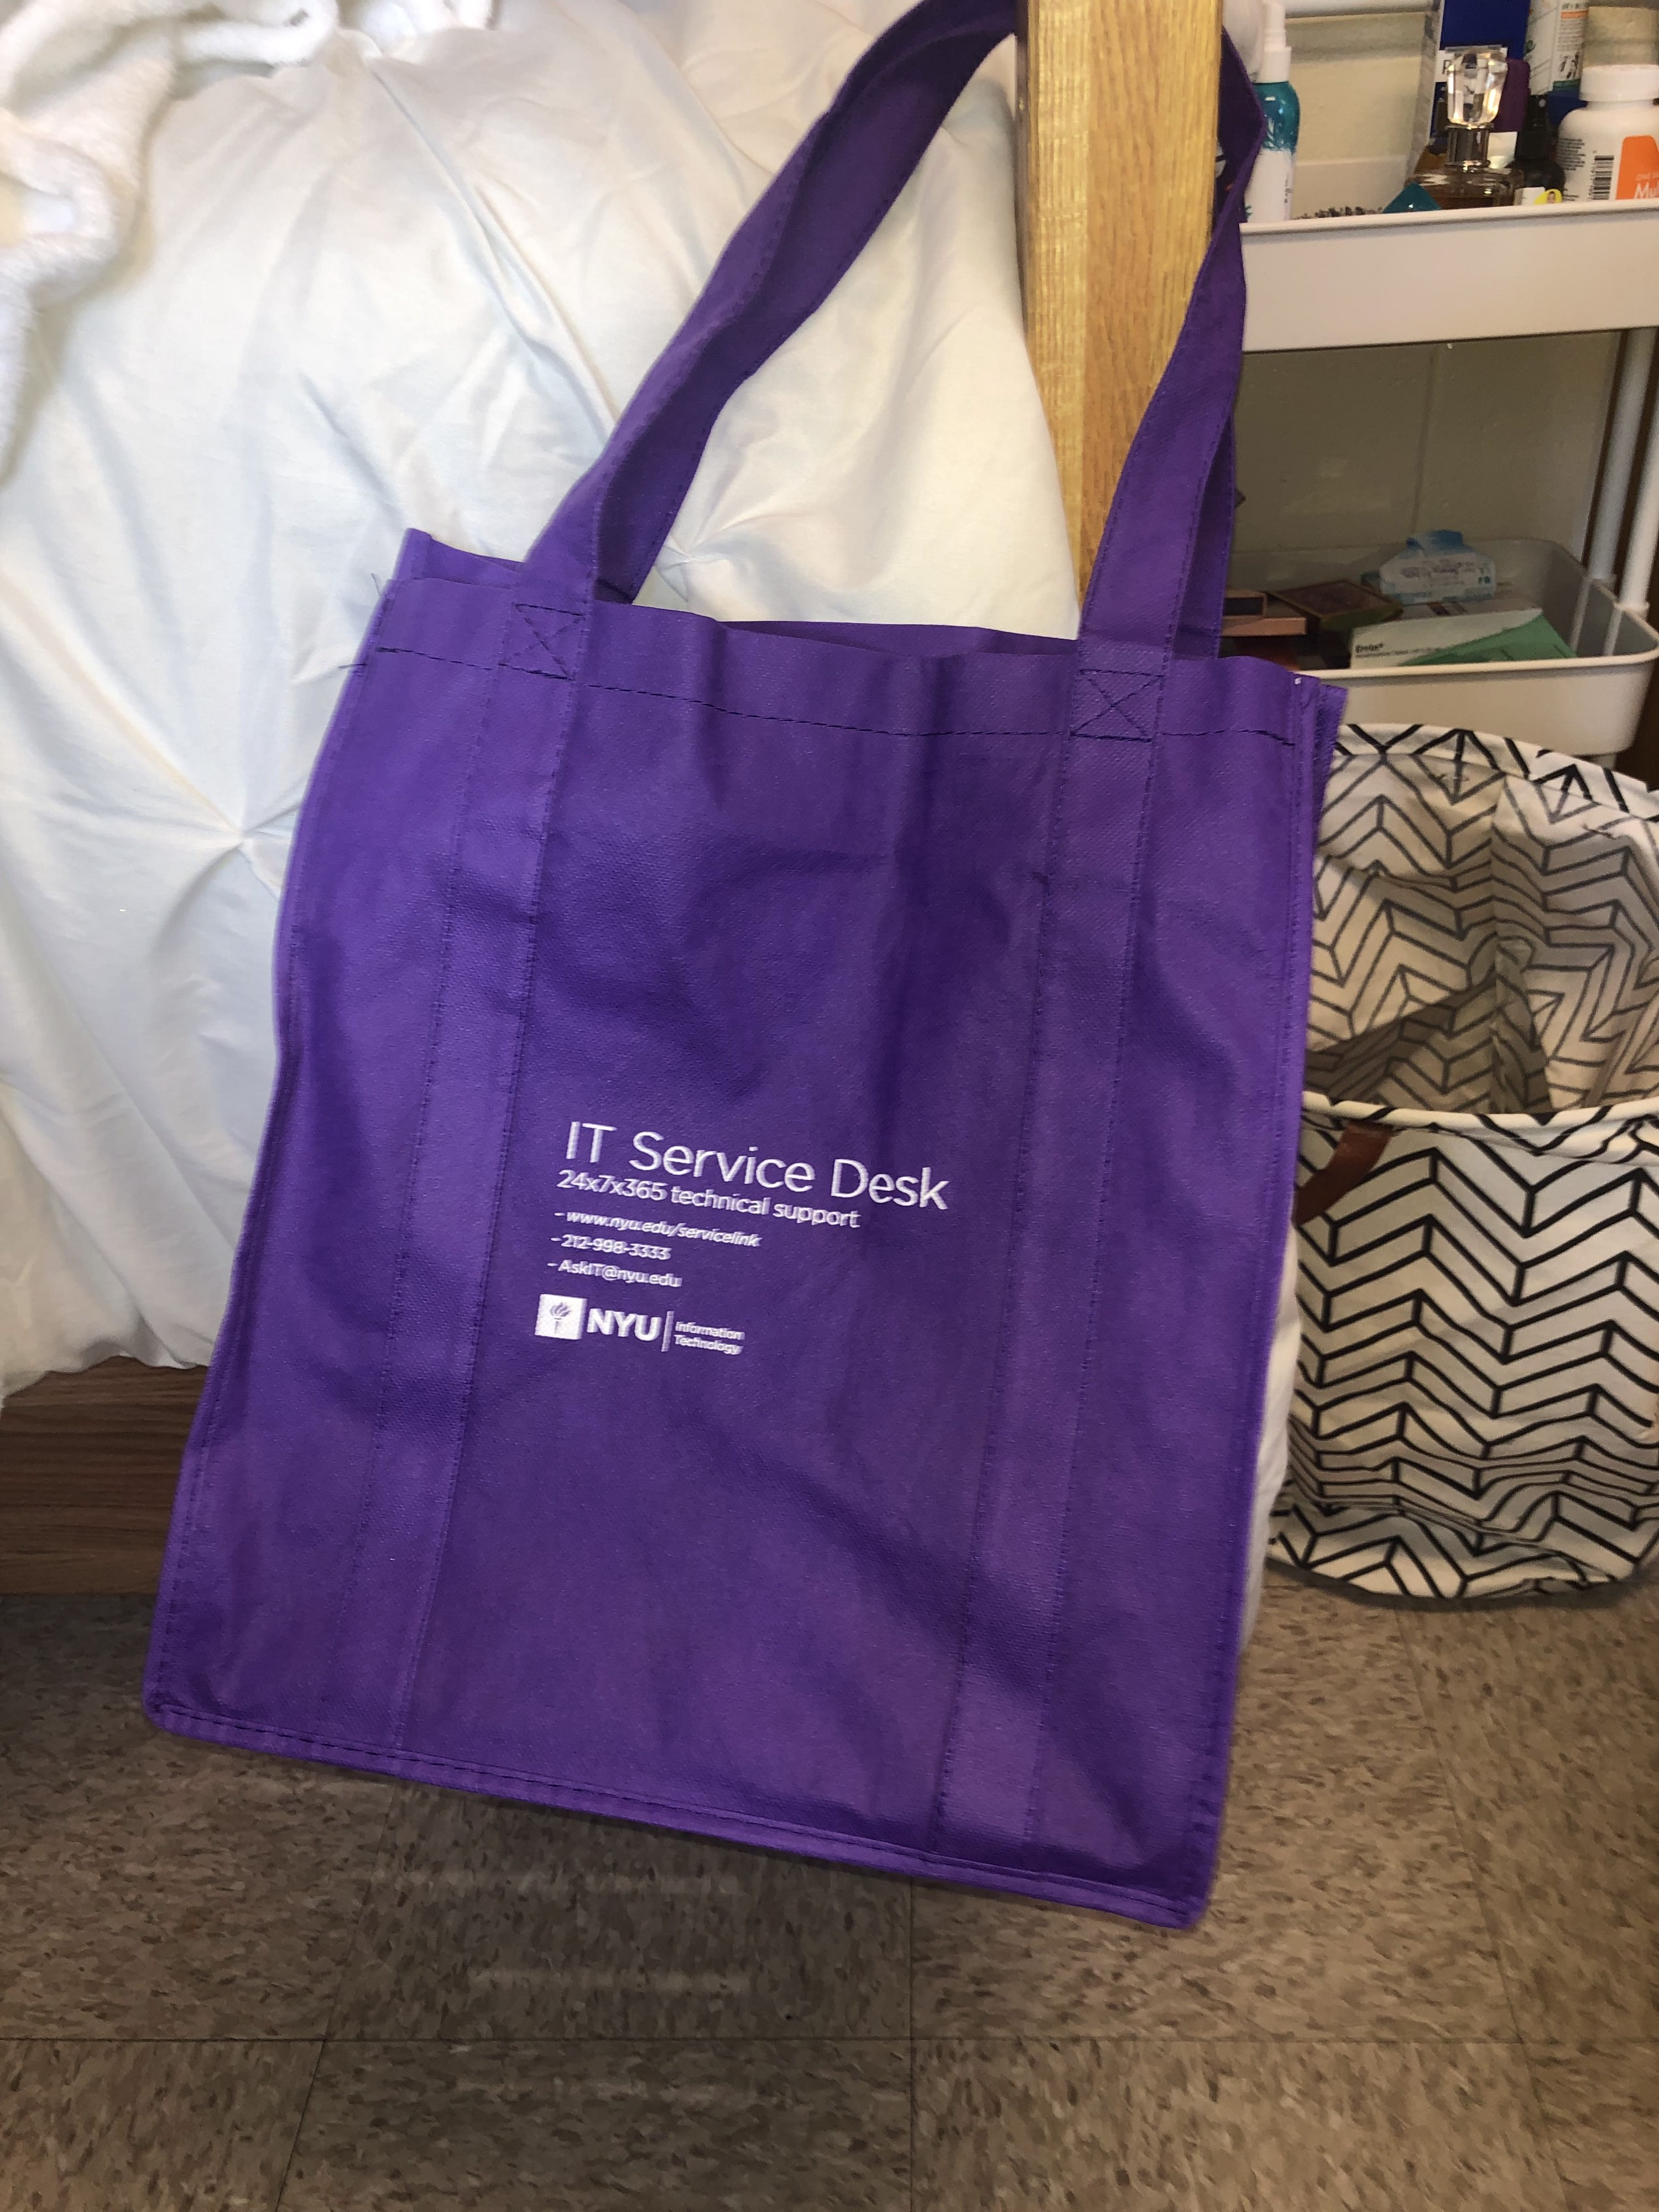 All the Tote Bags I Got for Free During Welcome Week, Ranked